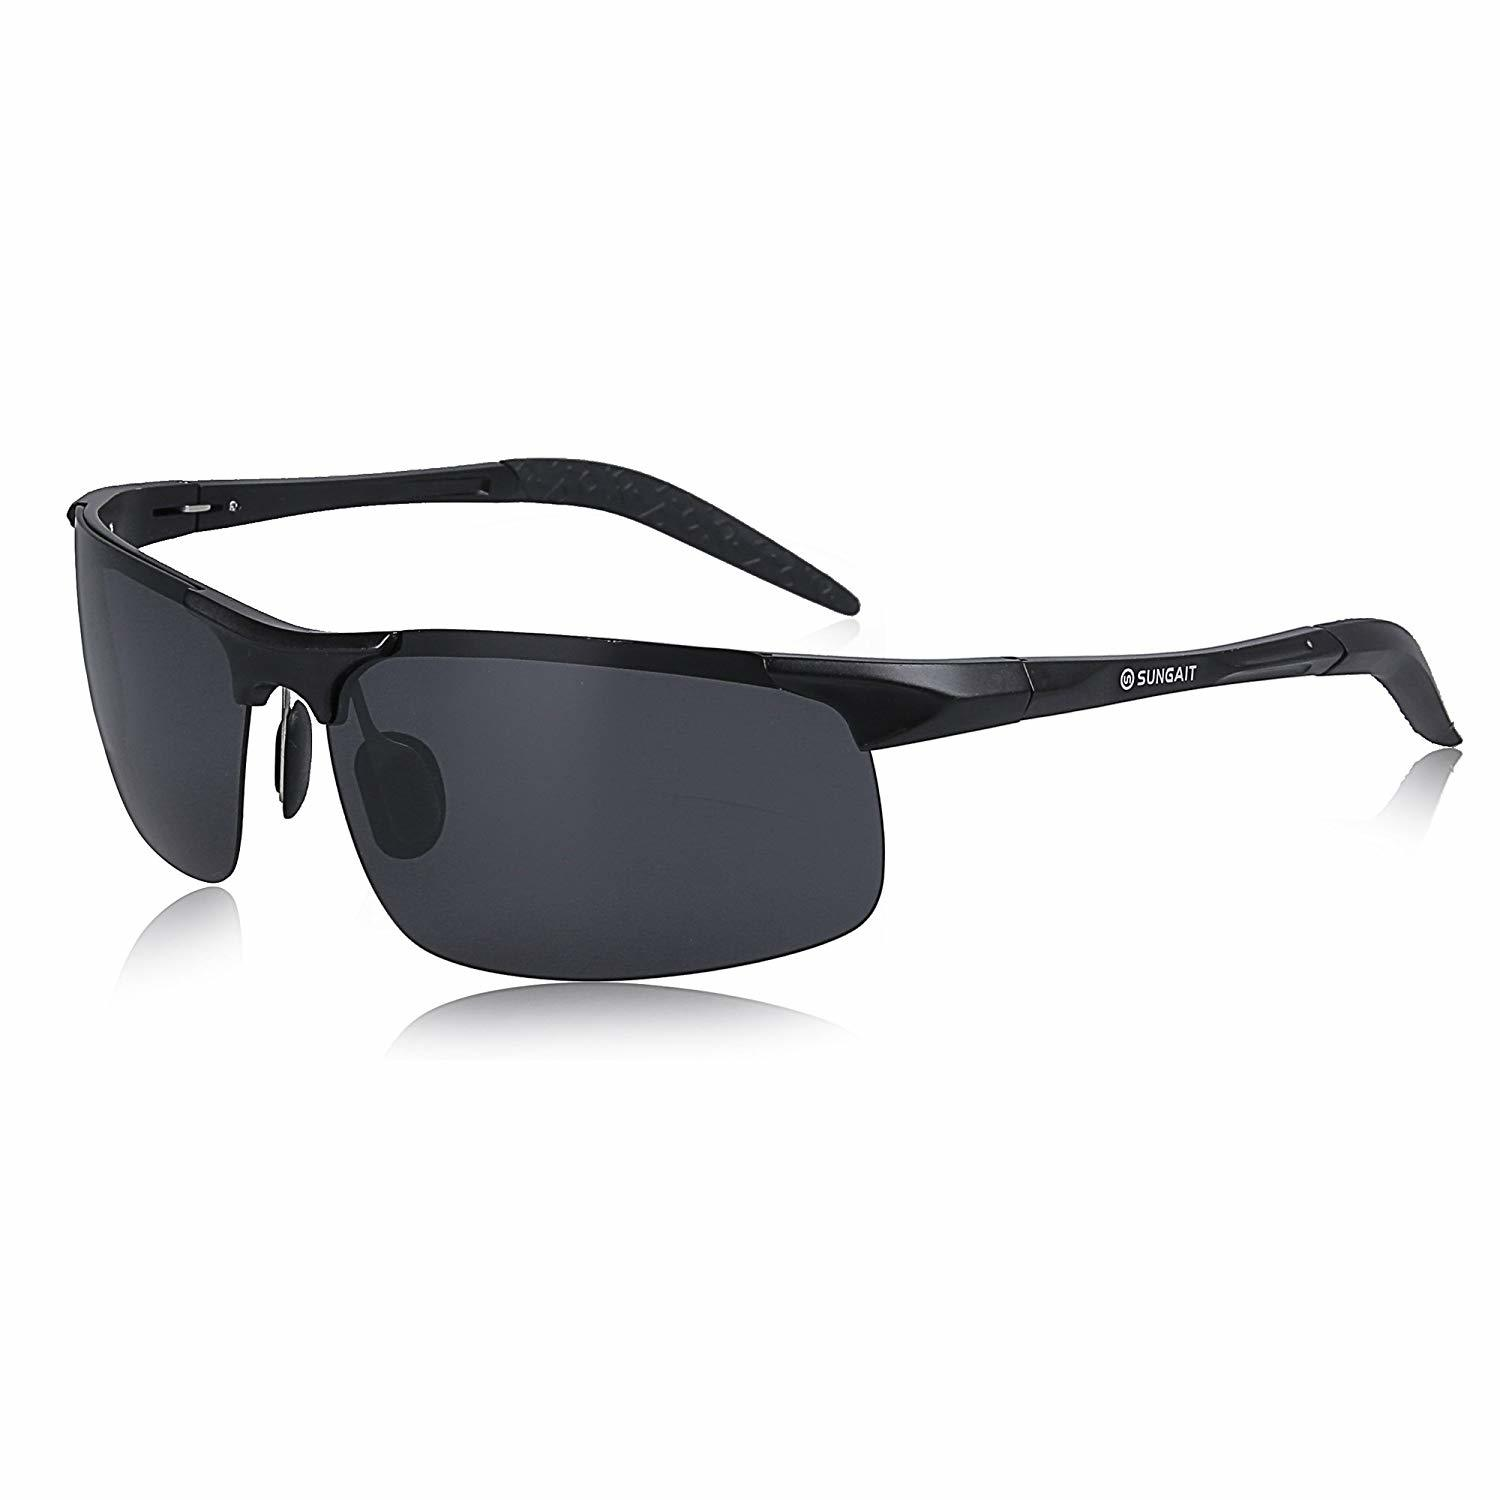 156db182f4d SUNGAIT Men s Polarized Sunglasses UV400. Through the adjustable temple